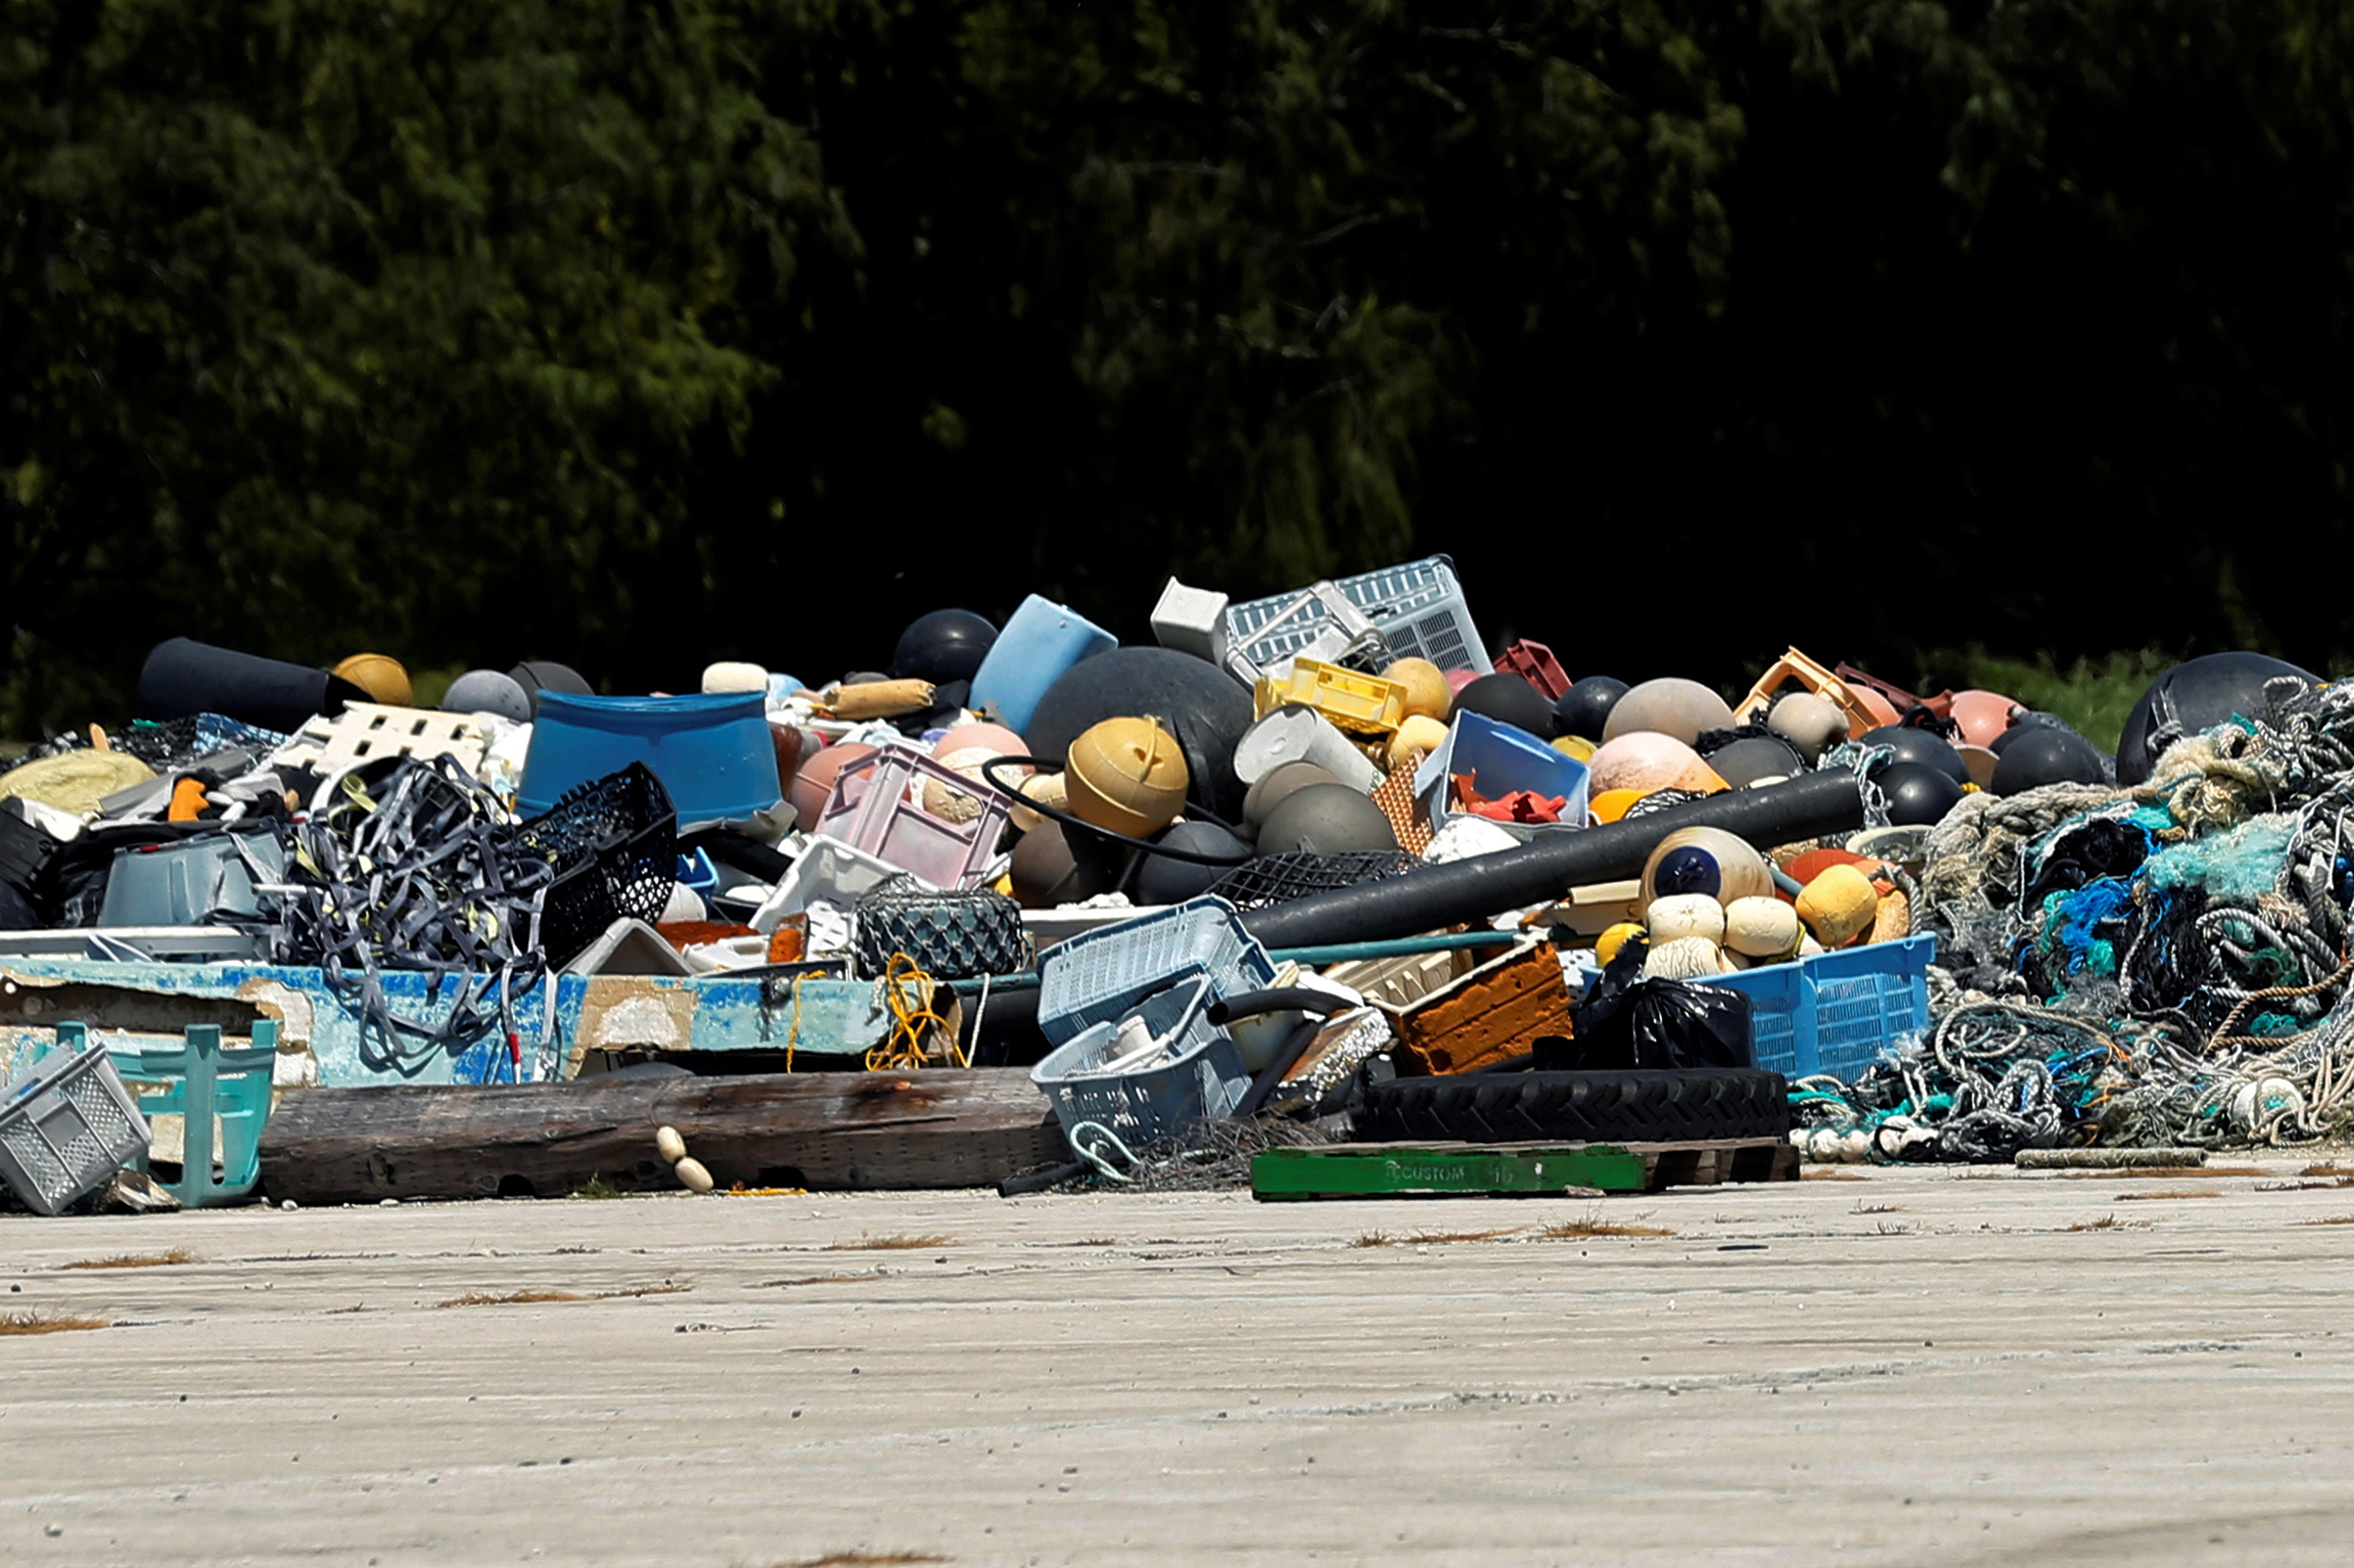 A pile of trash collected after it washed up on shore from the Pacific Ocean, waiting now to be shipped out, is seen as U.S. President Barack Obama tours the trash  boneyard  at Papahanaumokuakea Marine National Monument, Midway Atoll, September 1, 2016.